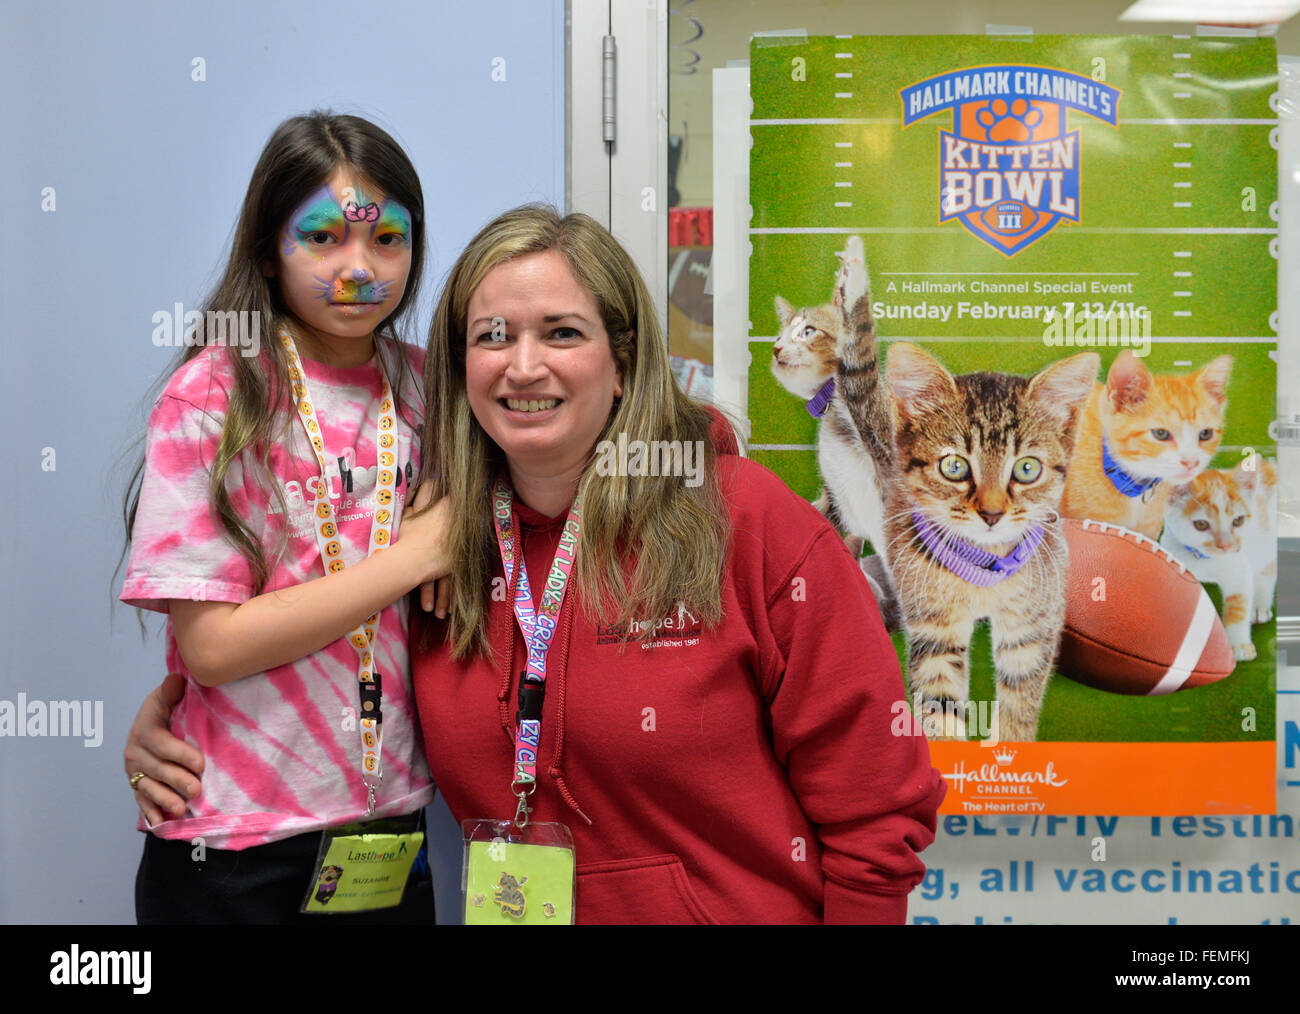 Wantagh, New York, USA. 7th February 2016. SUZANNE FERRARA, with her face painted, and her mother STACY FERRARA, - Stock Image